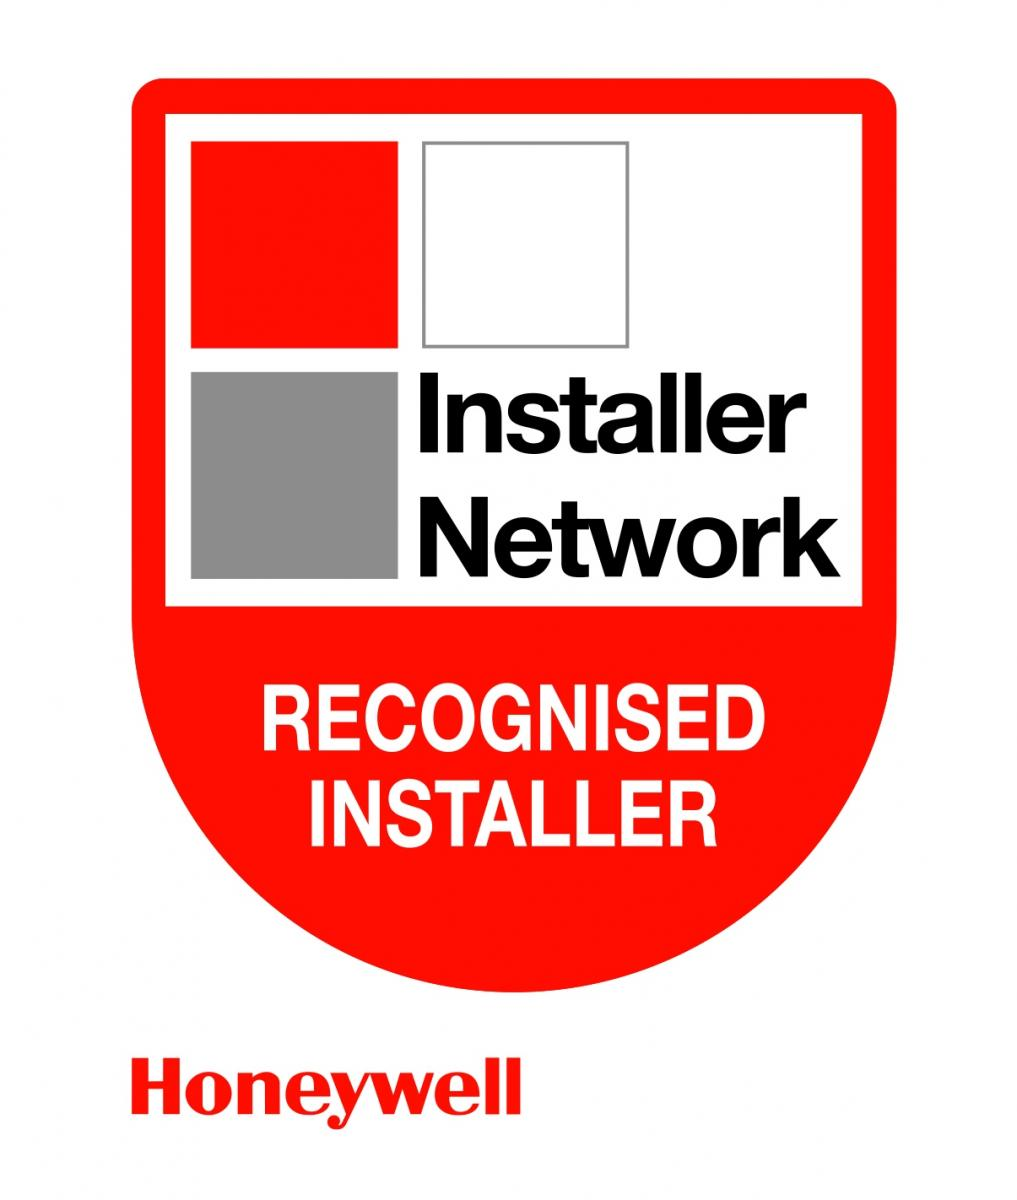 Honeywell Installer Network - Recognised Installer